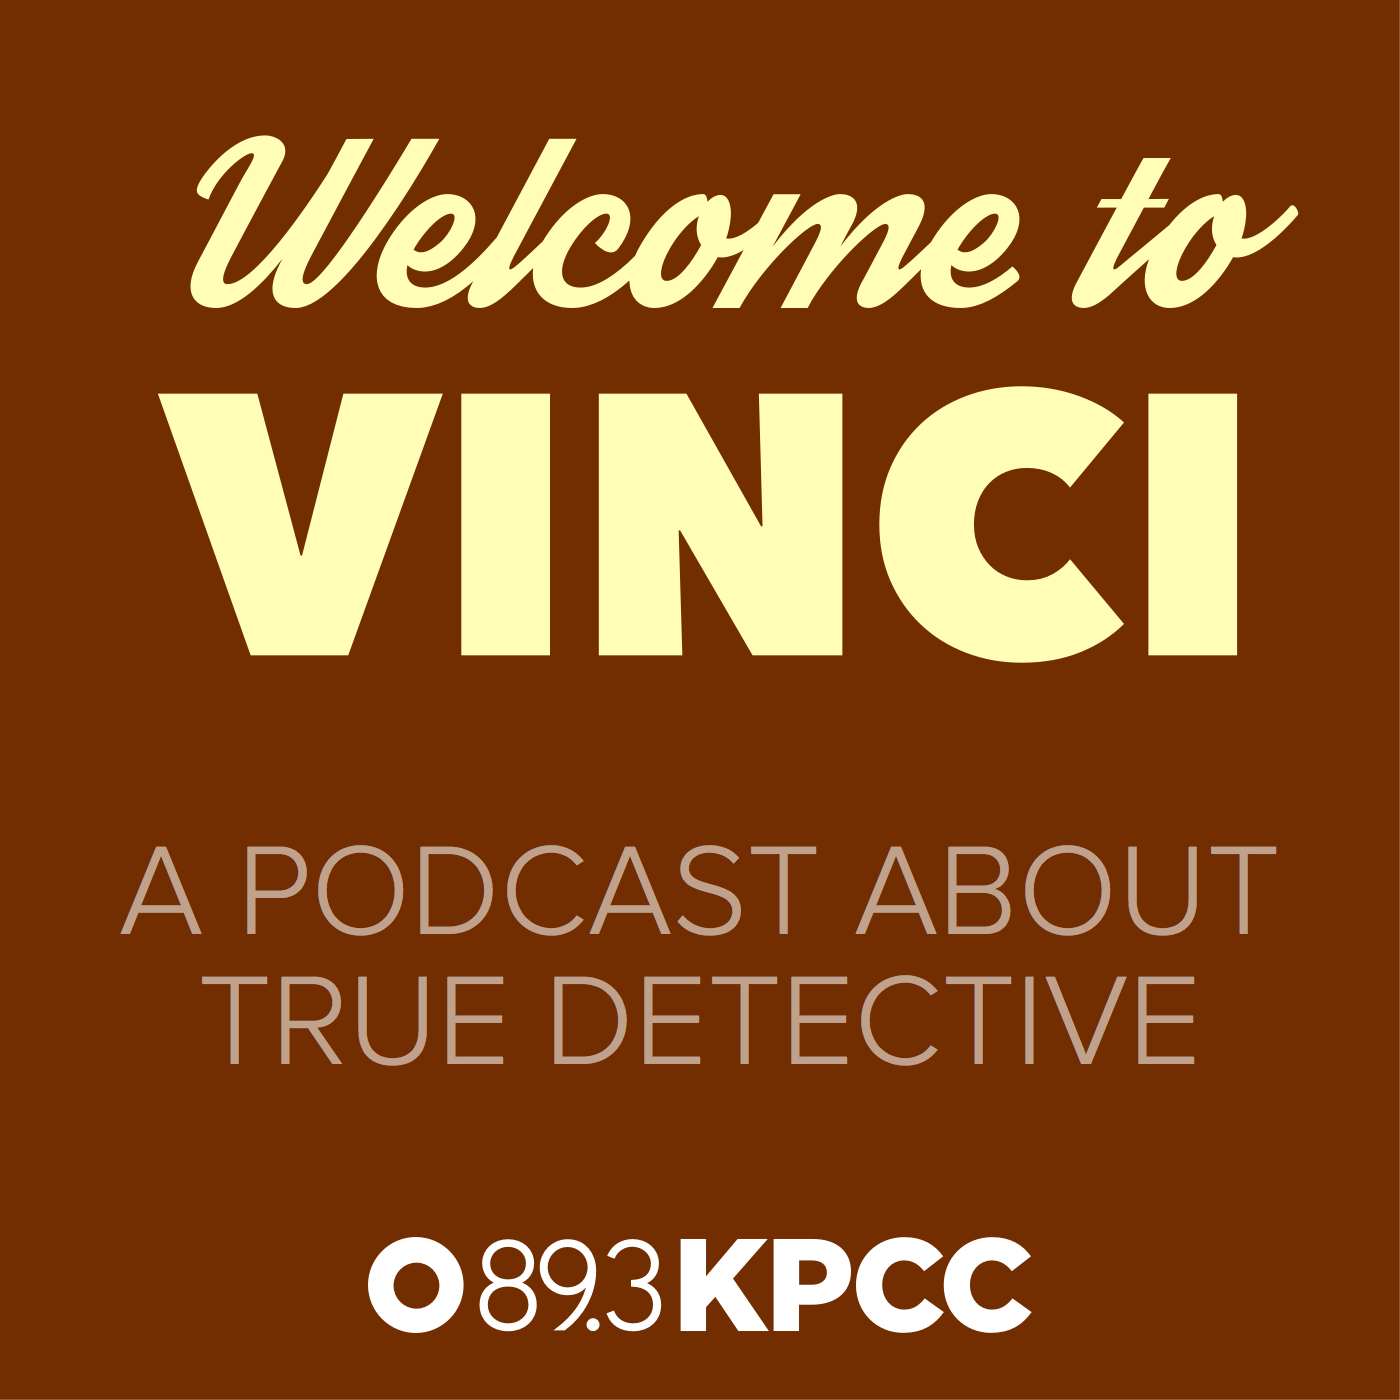 Welcome to Vinci, a podcast about True Detective